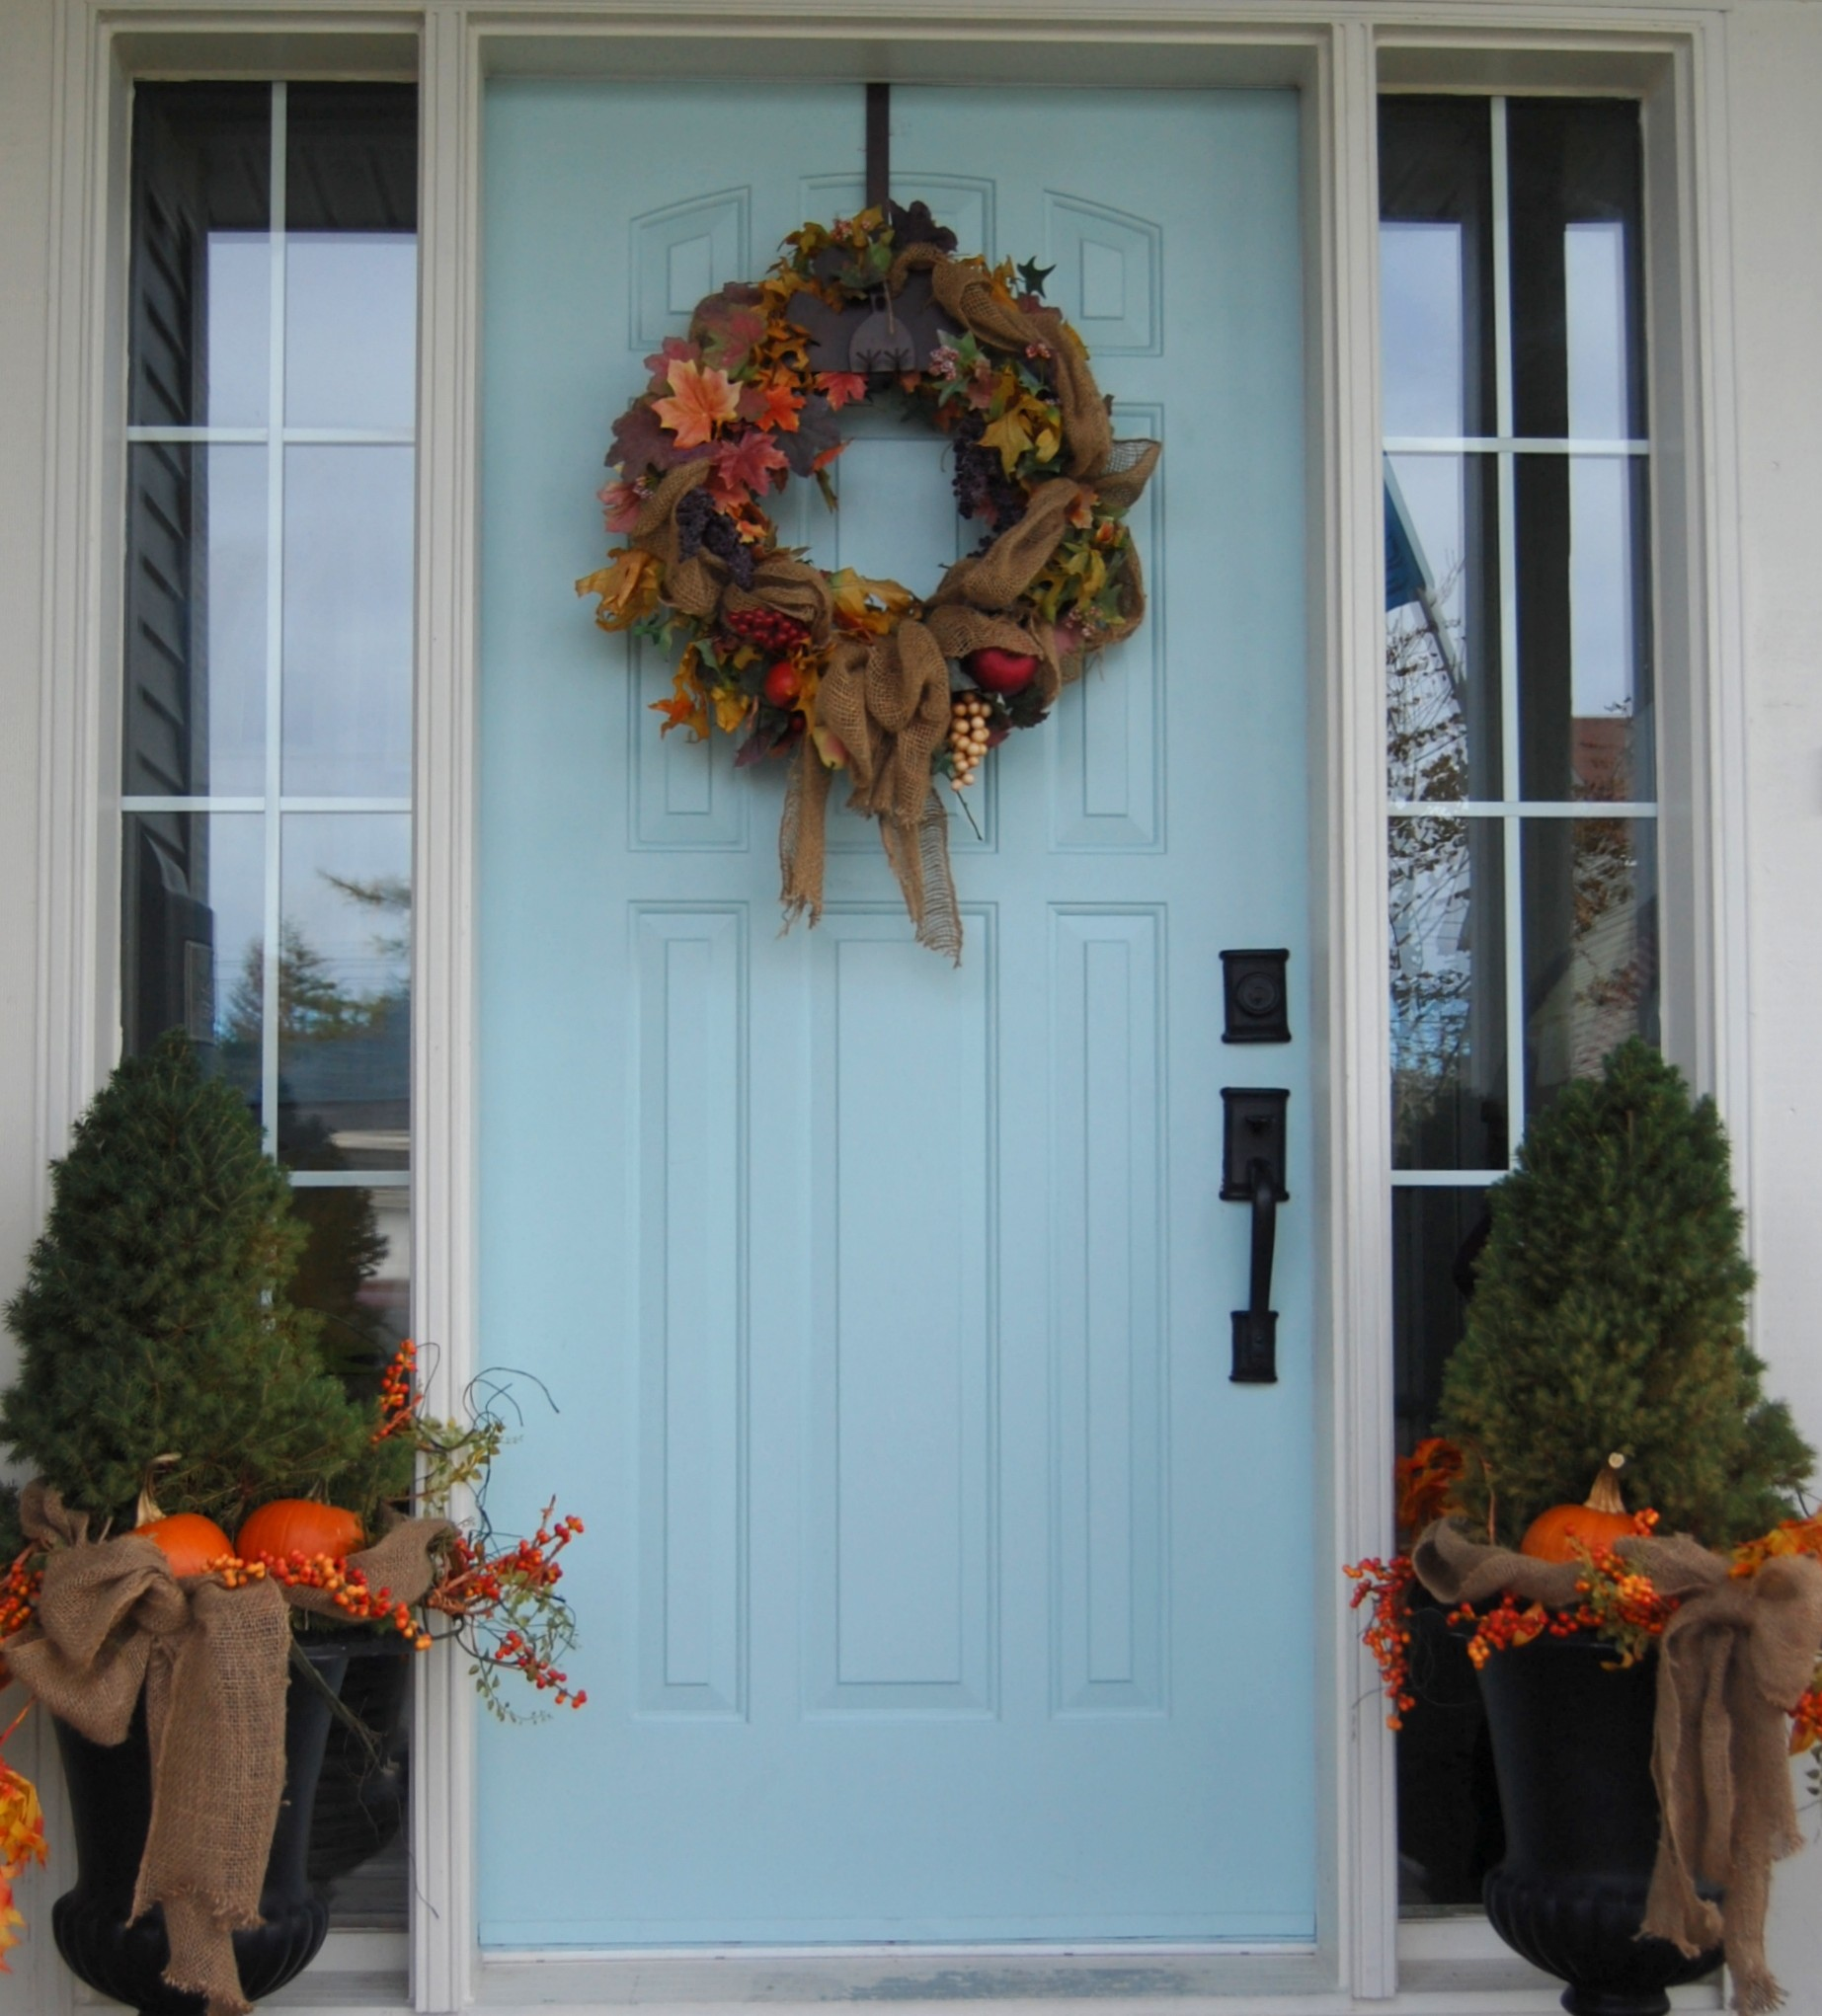 Fall Door Decor: My Two Tries At Fall Door Decor (Fall Wreaths)